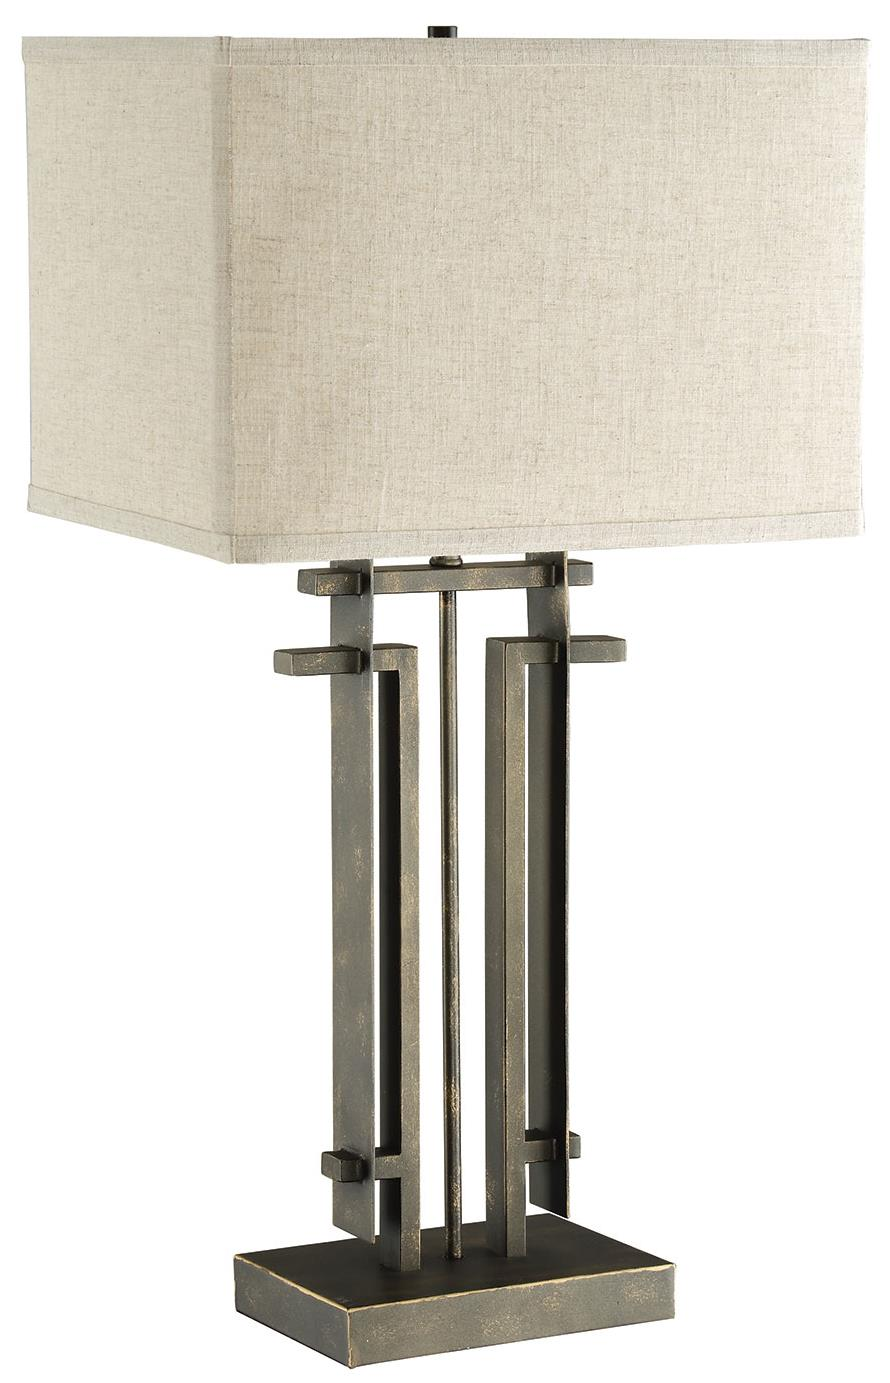 Coaster Table Lamps Lamp - Item Number: 901654